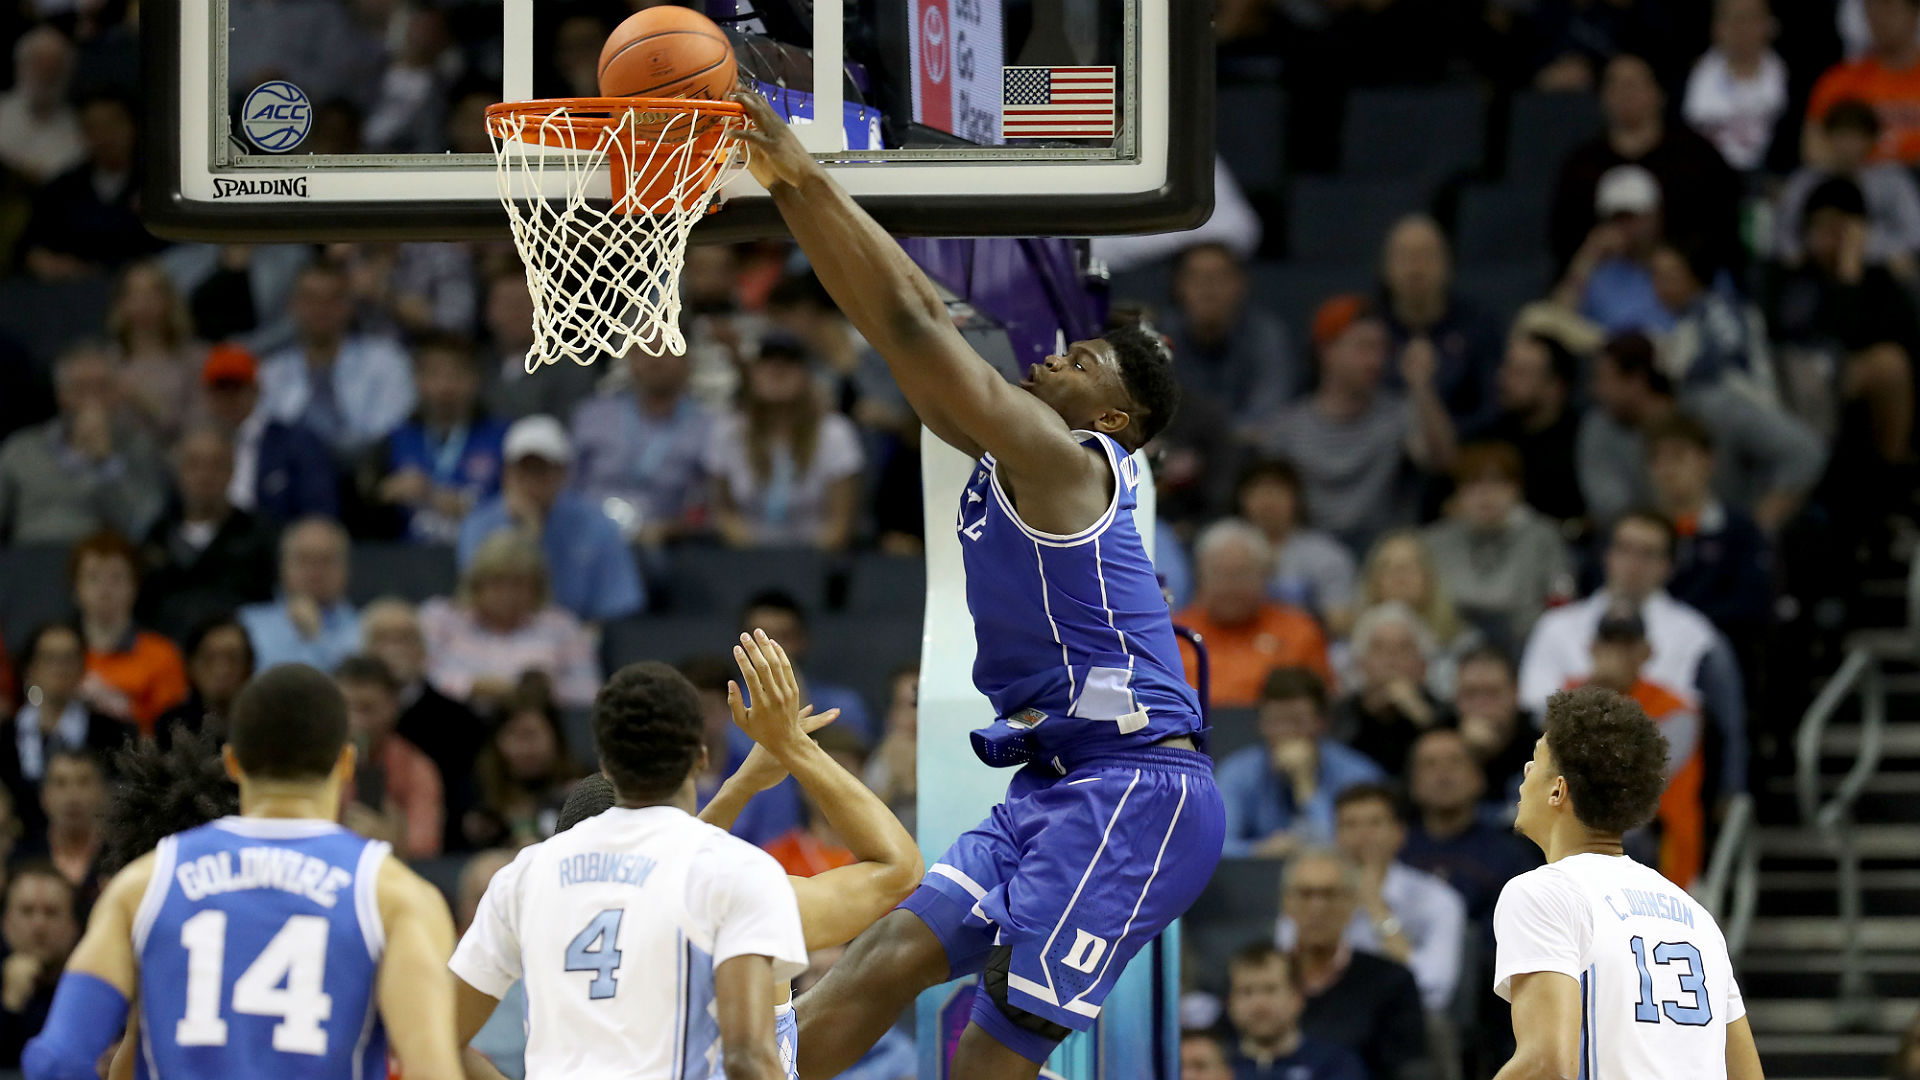 March Madness 2019 3 Takeaways From Duke S Win Over: 3 Takeaways From Duke's ACC Tournament Win Over UNC